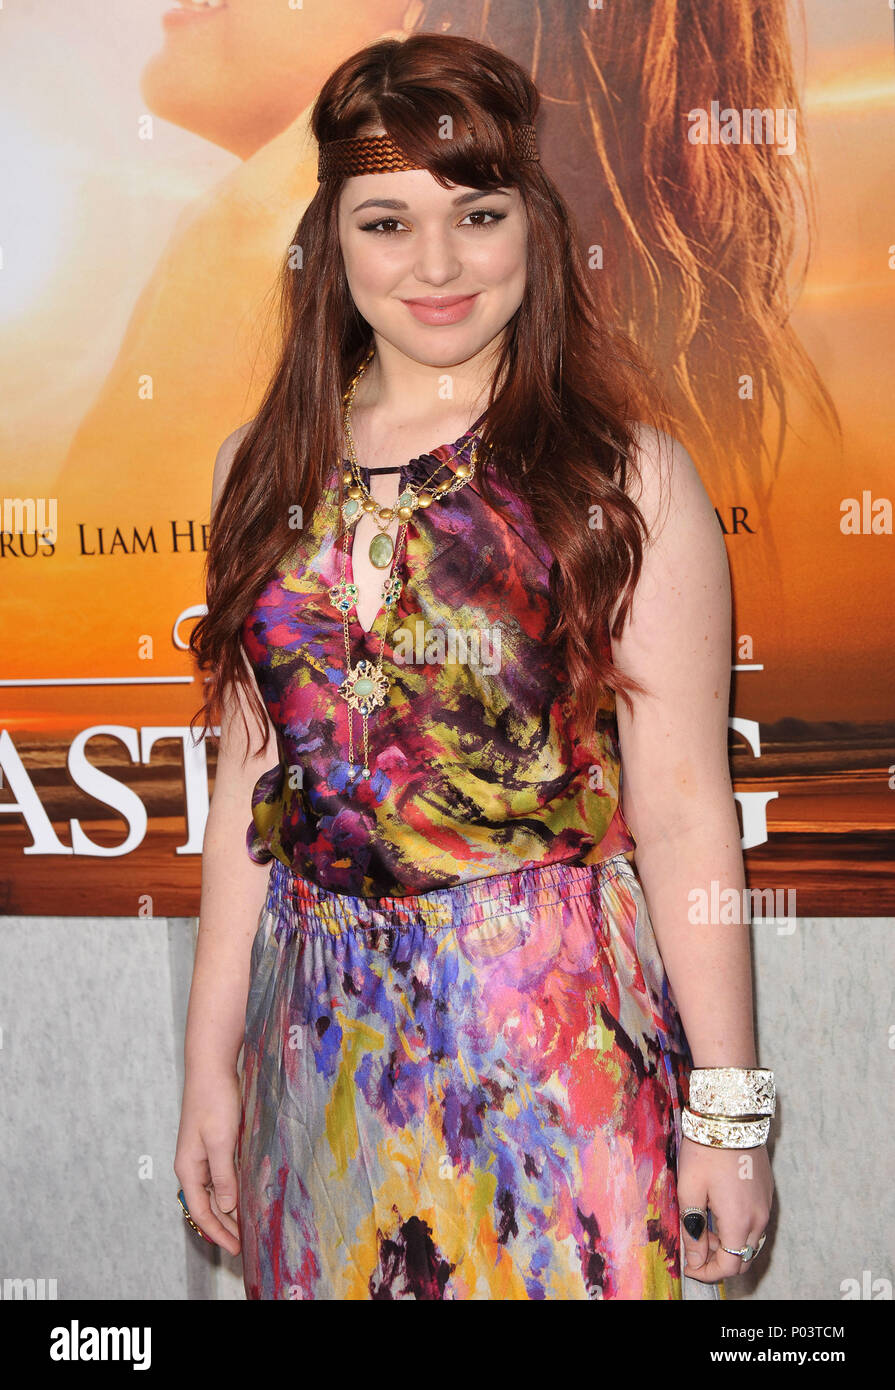 Jennifer Stone 38 - The Last Song Premiere at the ArcLight